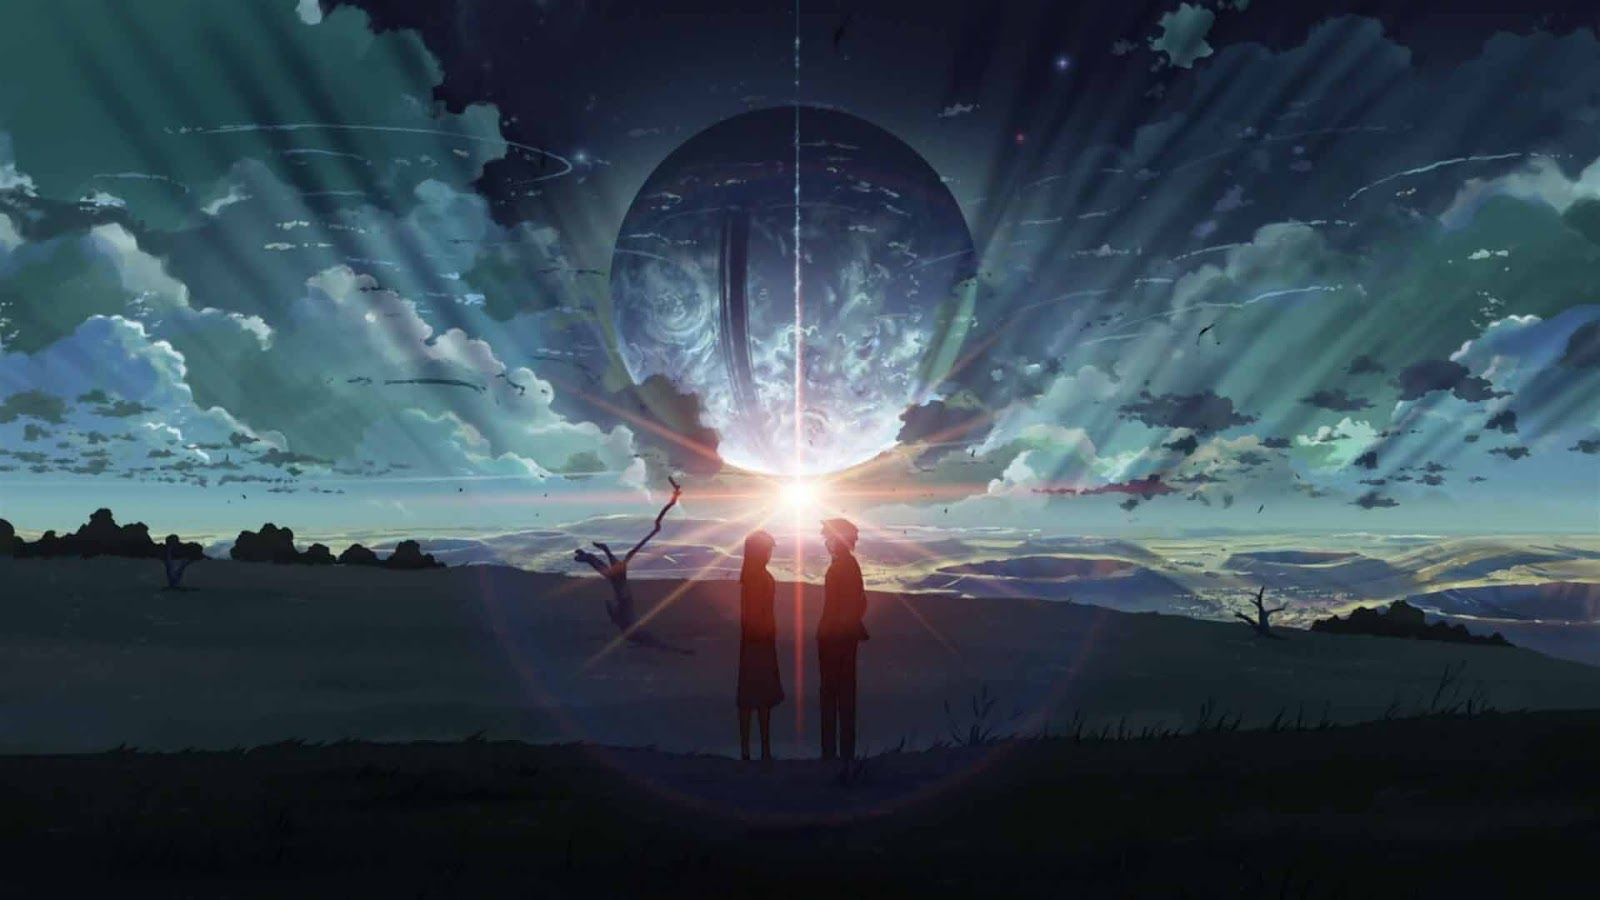 HQ Wallpapers: 5 Centimeters Per Second Pictures